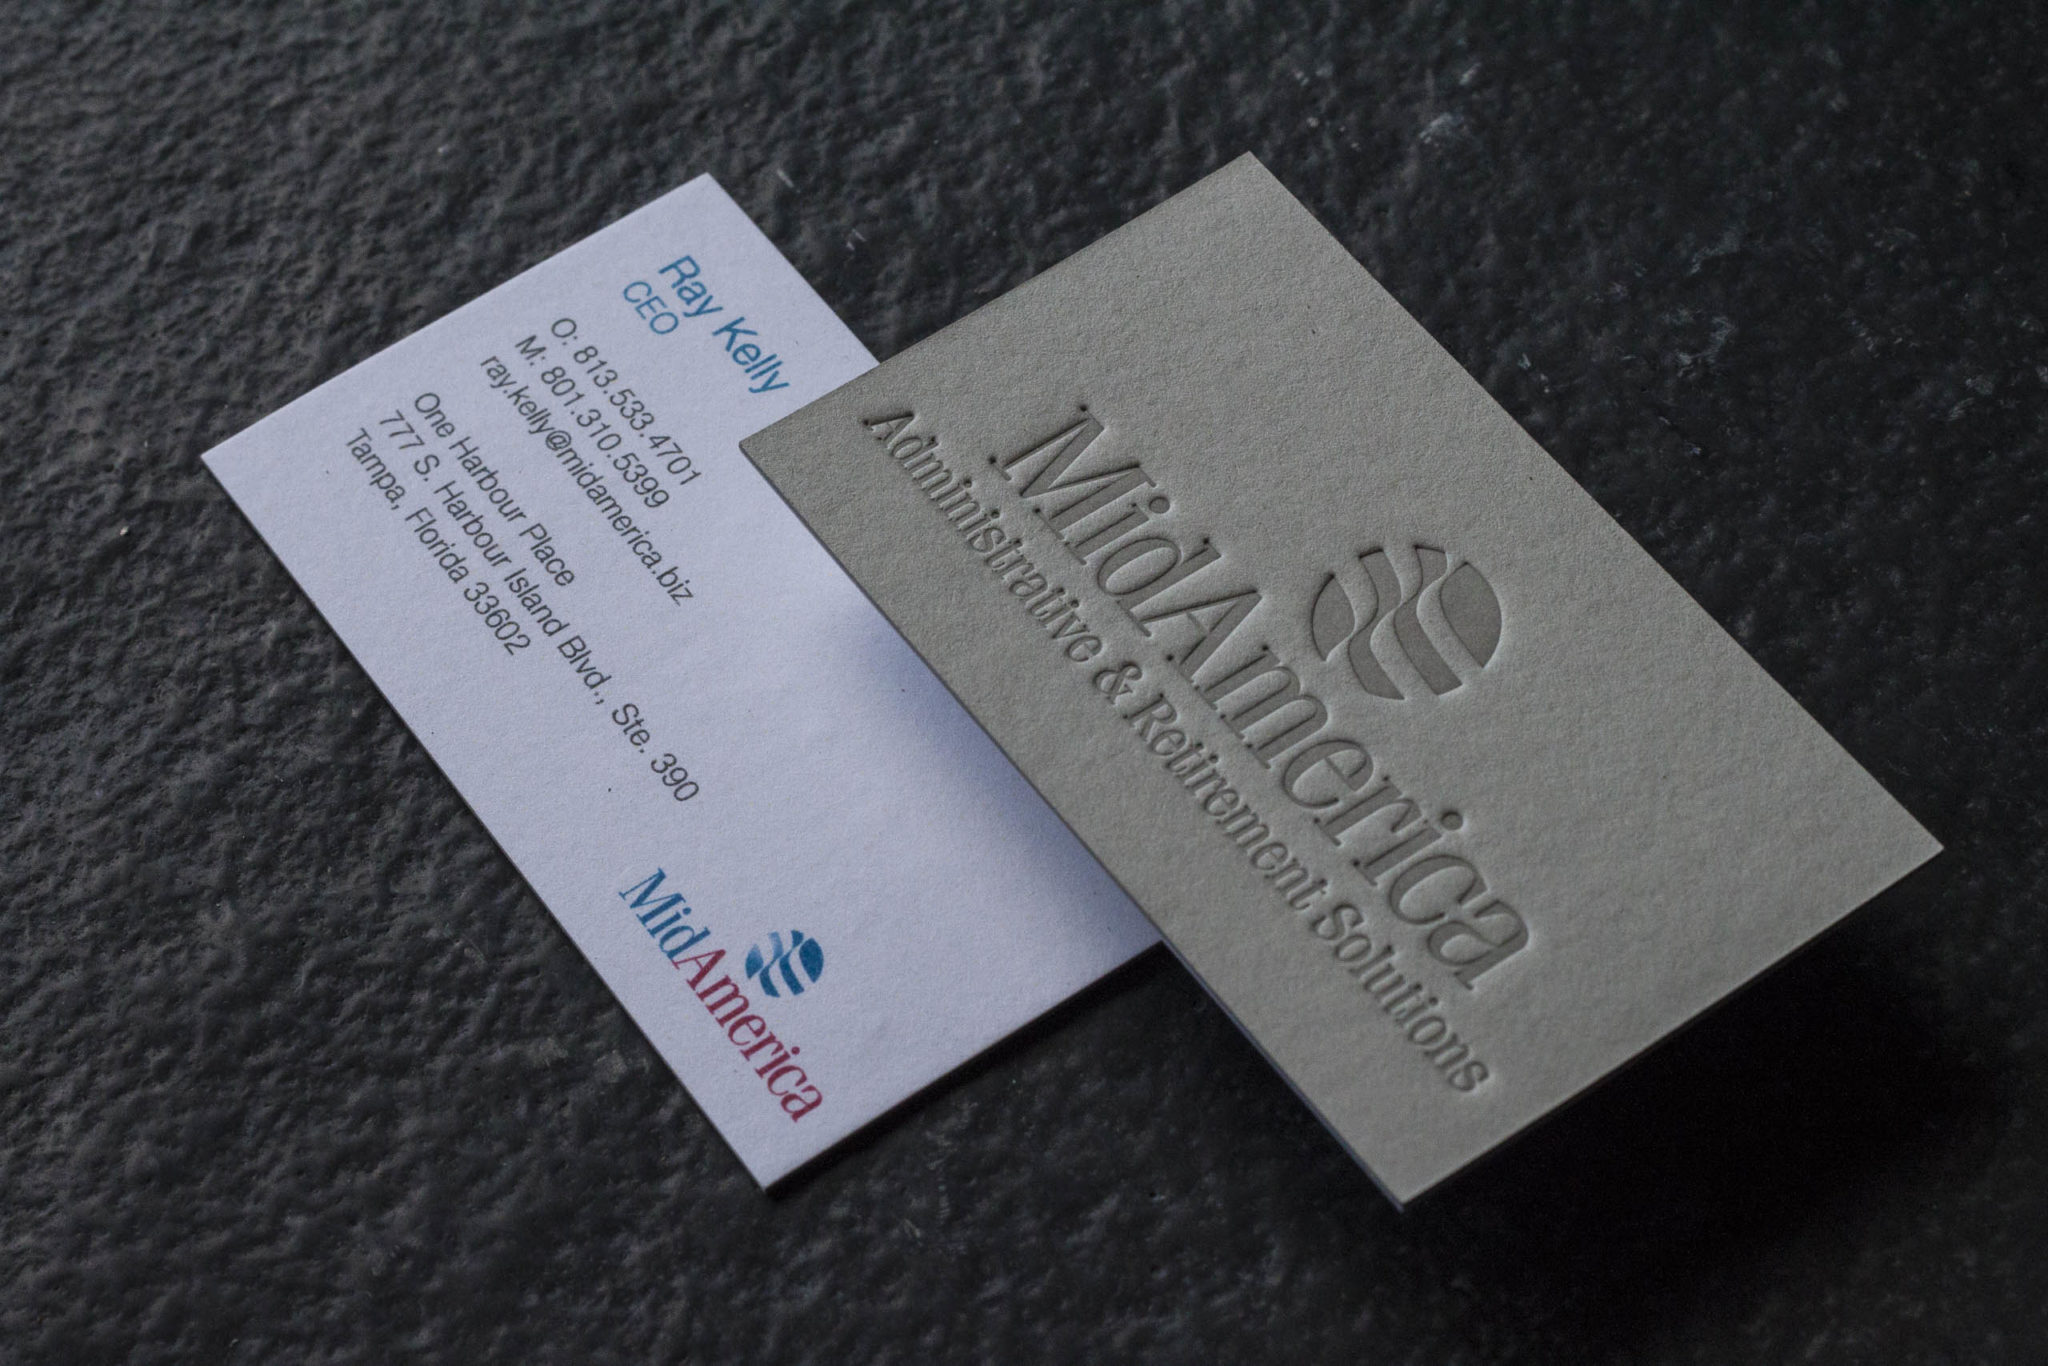 MidAmerica's deep-impression business cards